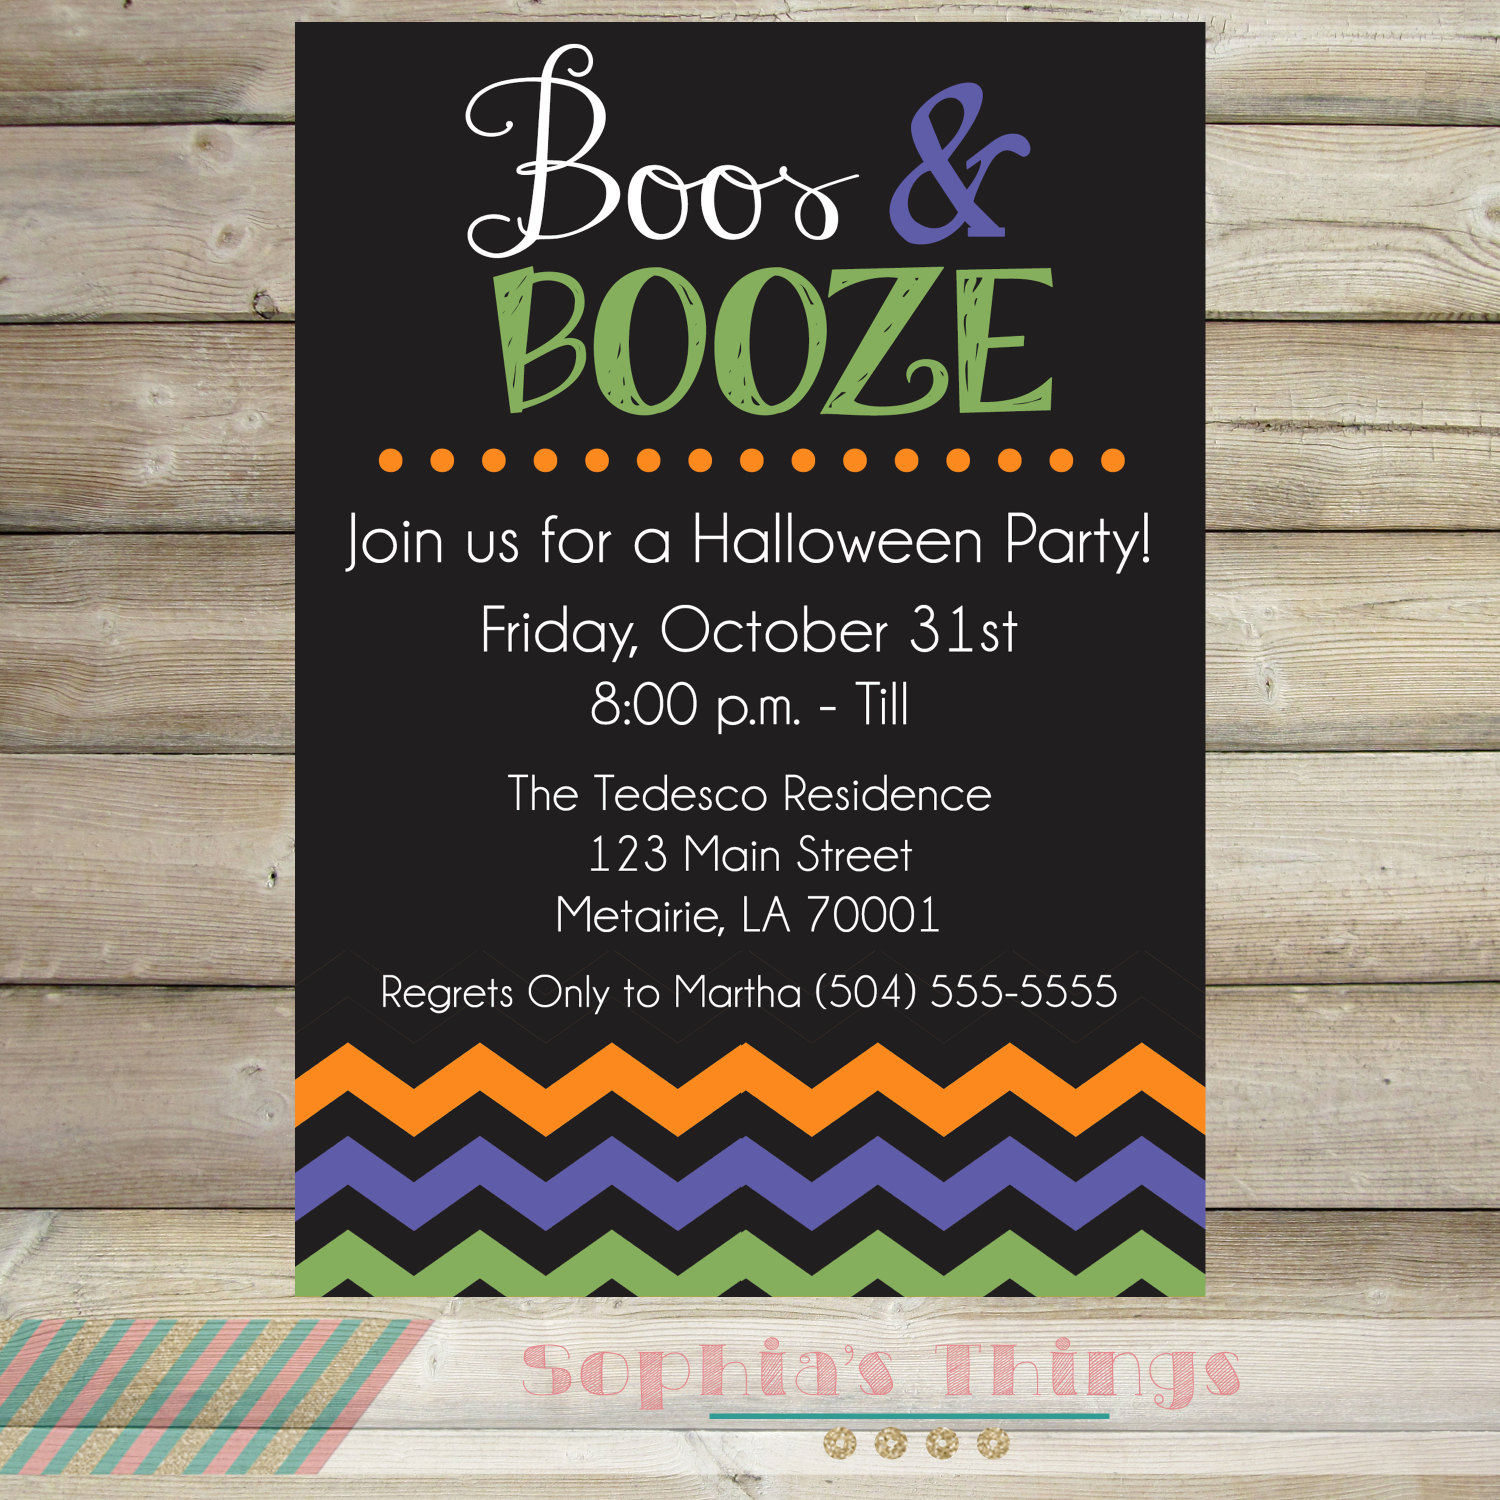 Boos and Booze Halloween Party Invitation Adult Halloween